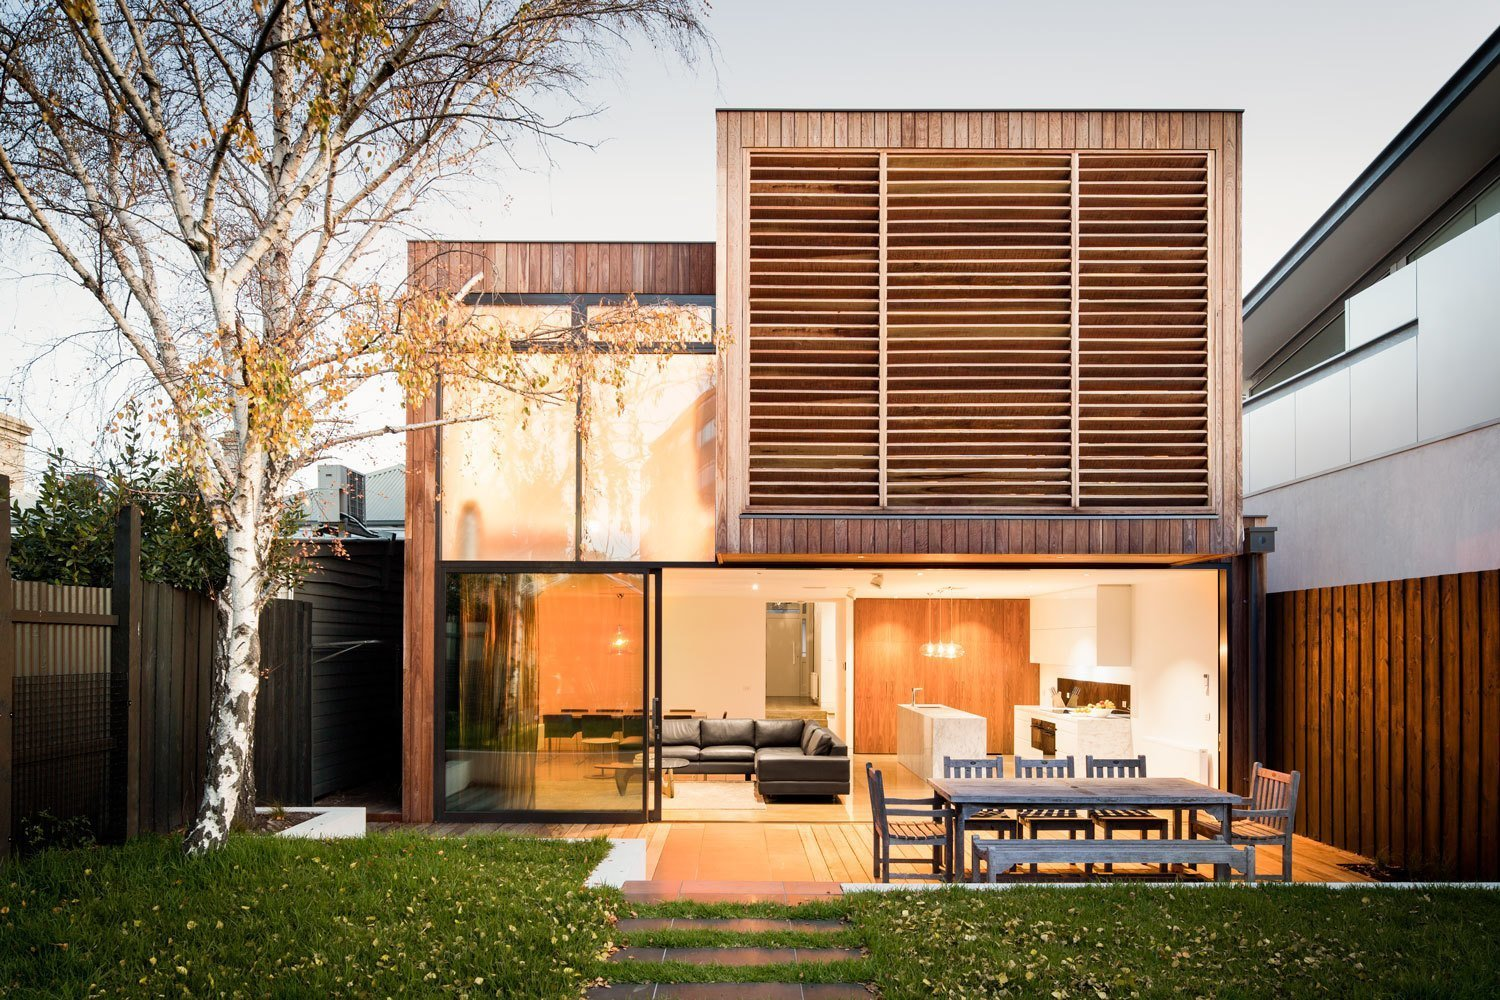 To create the feel of a seaside retreat, Mitsuori Architects included Australian Ironbark wood slats on the rear-facing wall of this rorenovated this Victoiran heritage home in Melbourne. Ironbark is an incredibly durable hardwood that turns a beautiful silvery-gray as it weathers over time. Tagged: Exterior, House, Wood Siding Material, and Flat RoofLine.  Photo 8 of 19 in 9 Best Homes With Interesting Screened Facades